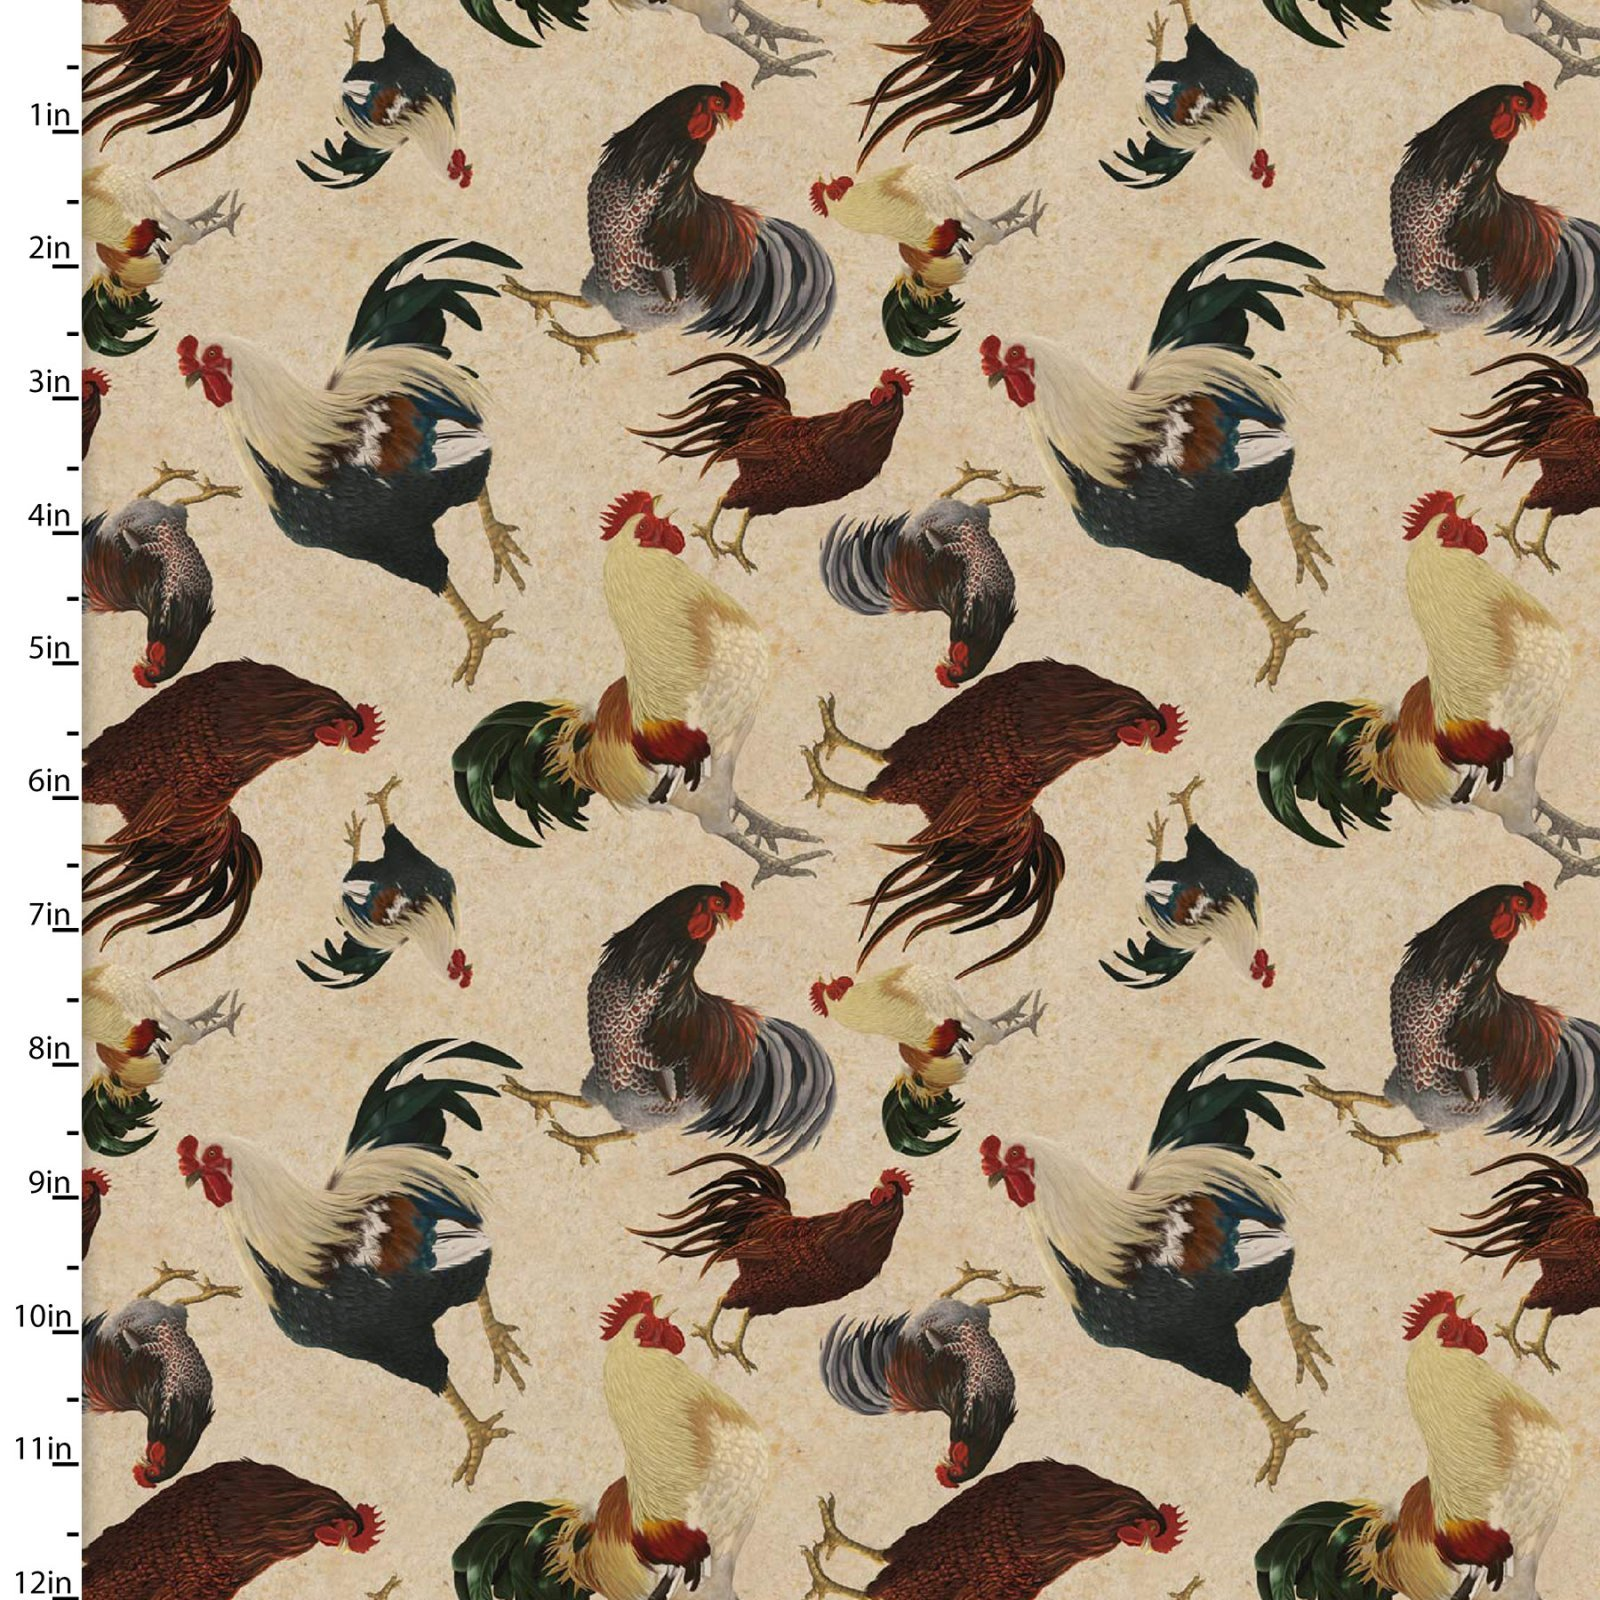 3 Wishes Rustic Roosters Digital 13854-Cream tossed Roosters